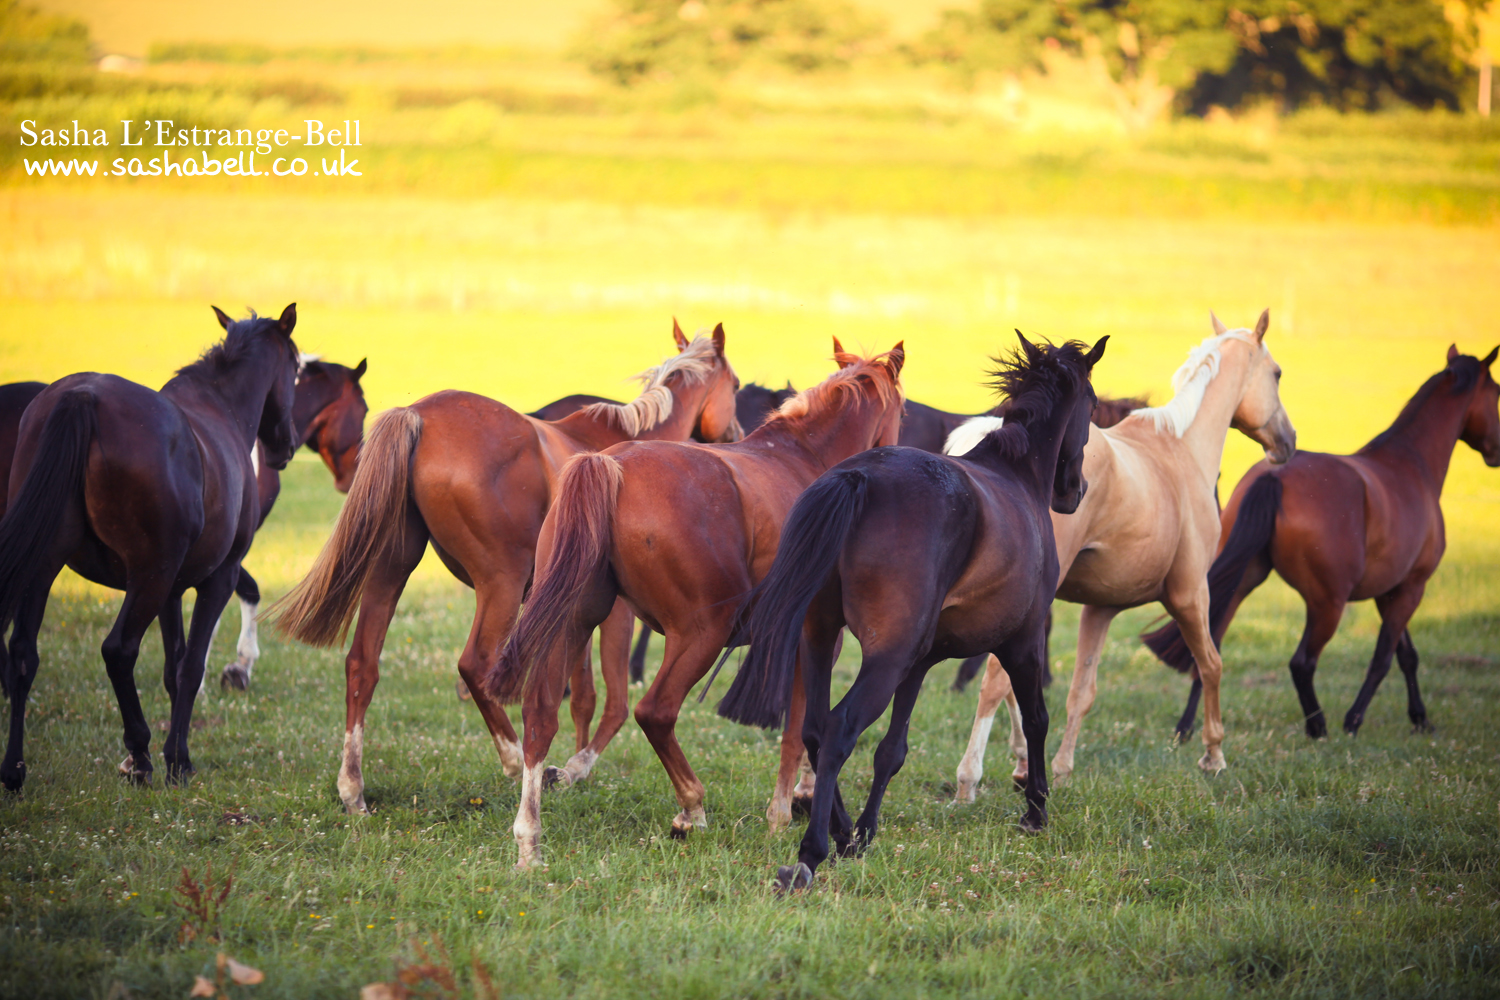 Herd of Horses – Day 303/365